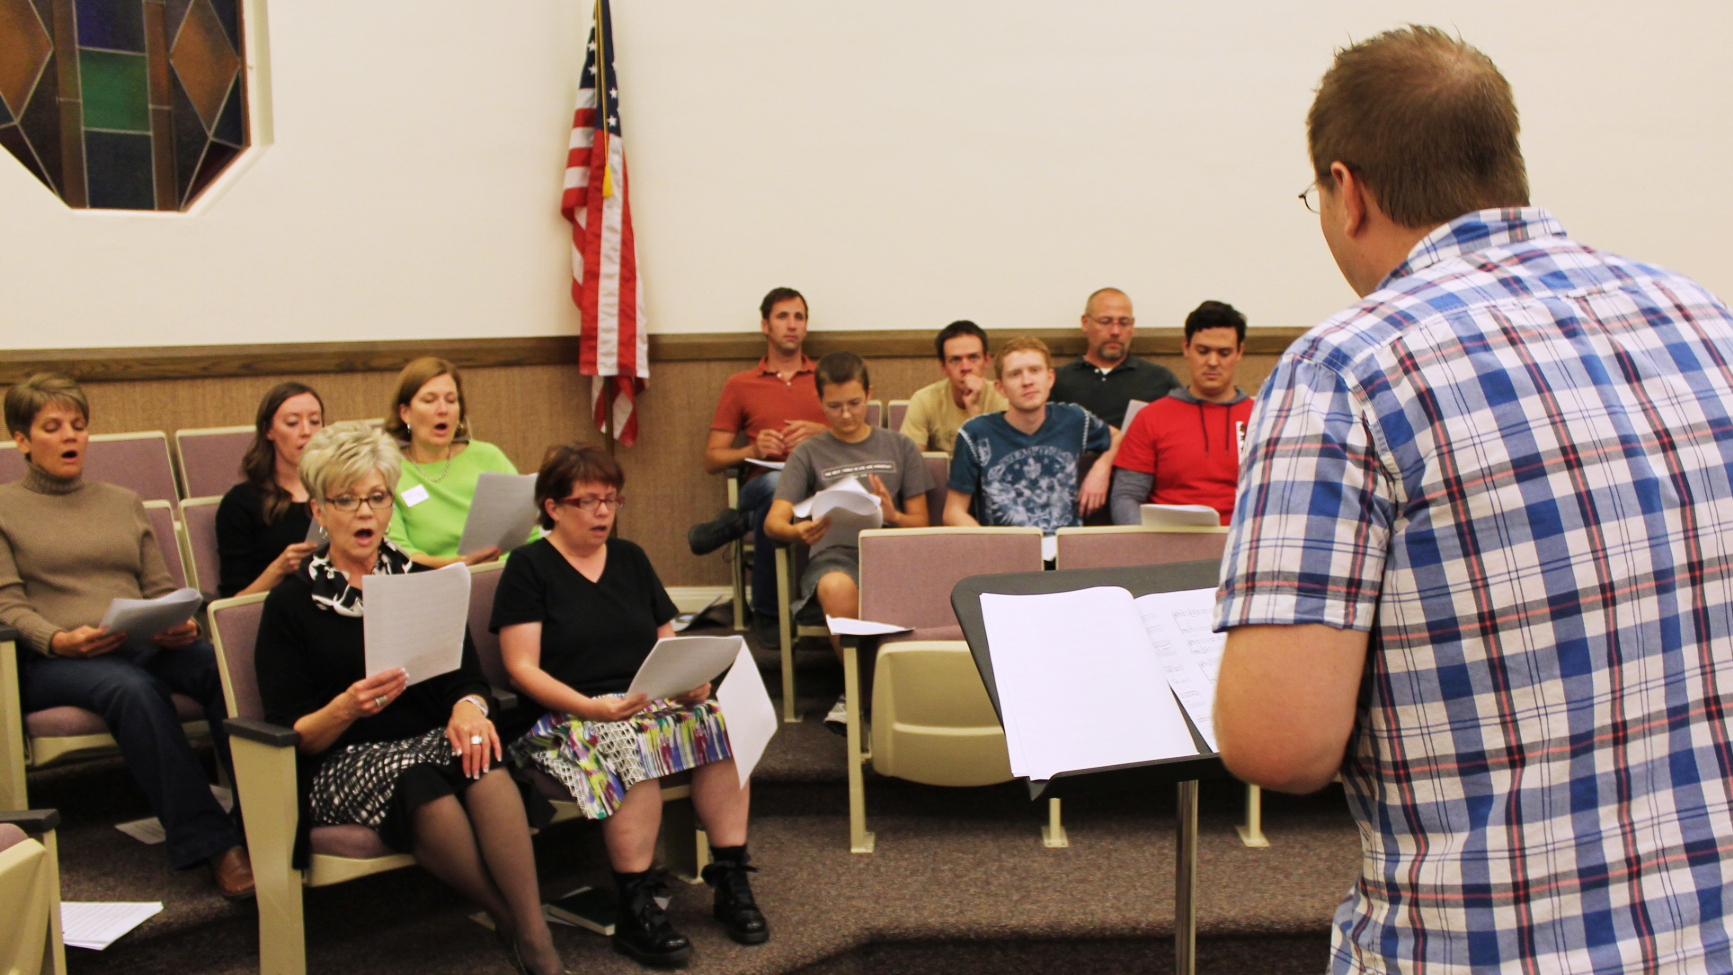 The choir's musical director, Bryan Horn, leads the ensemble in rehearsal.